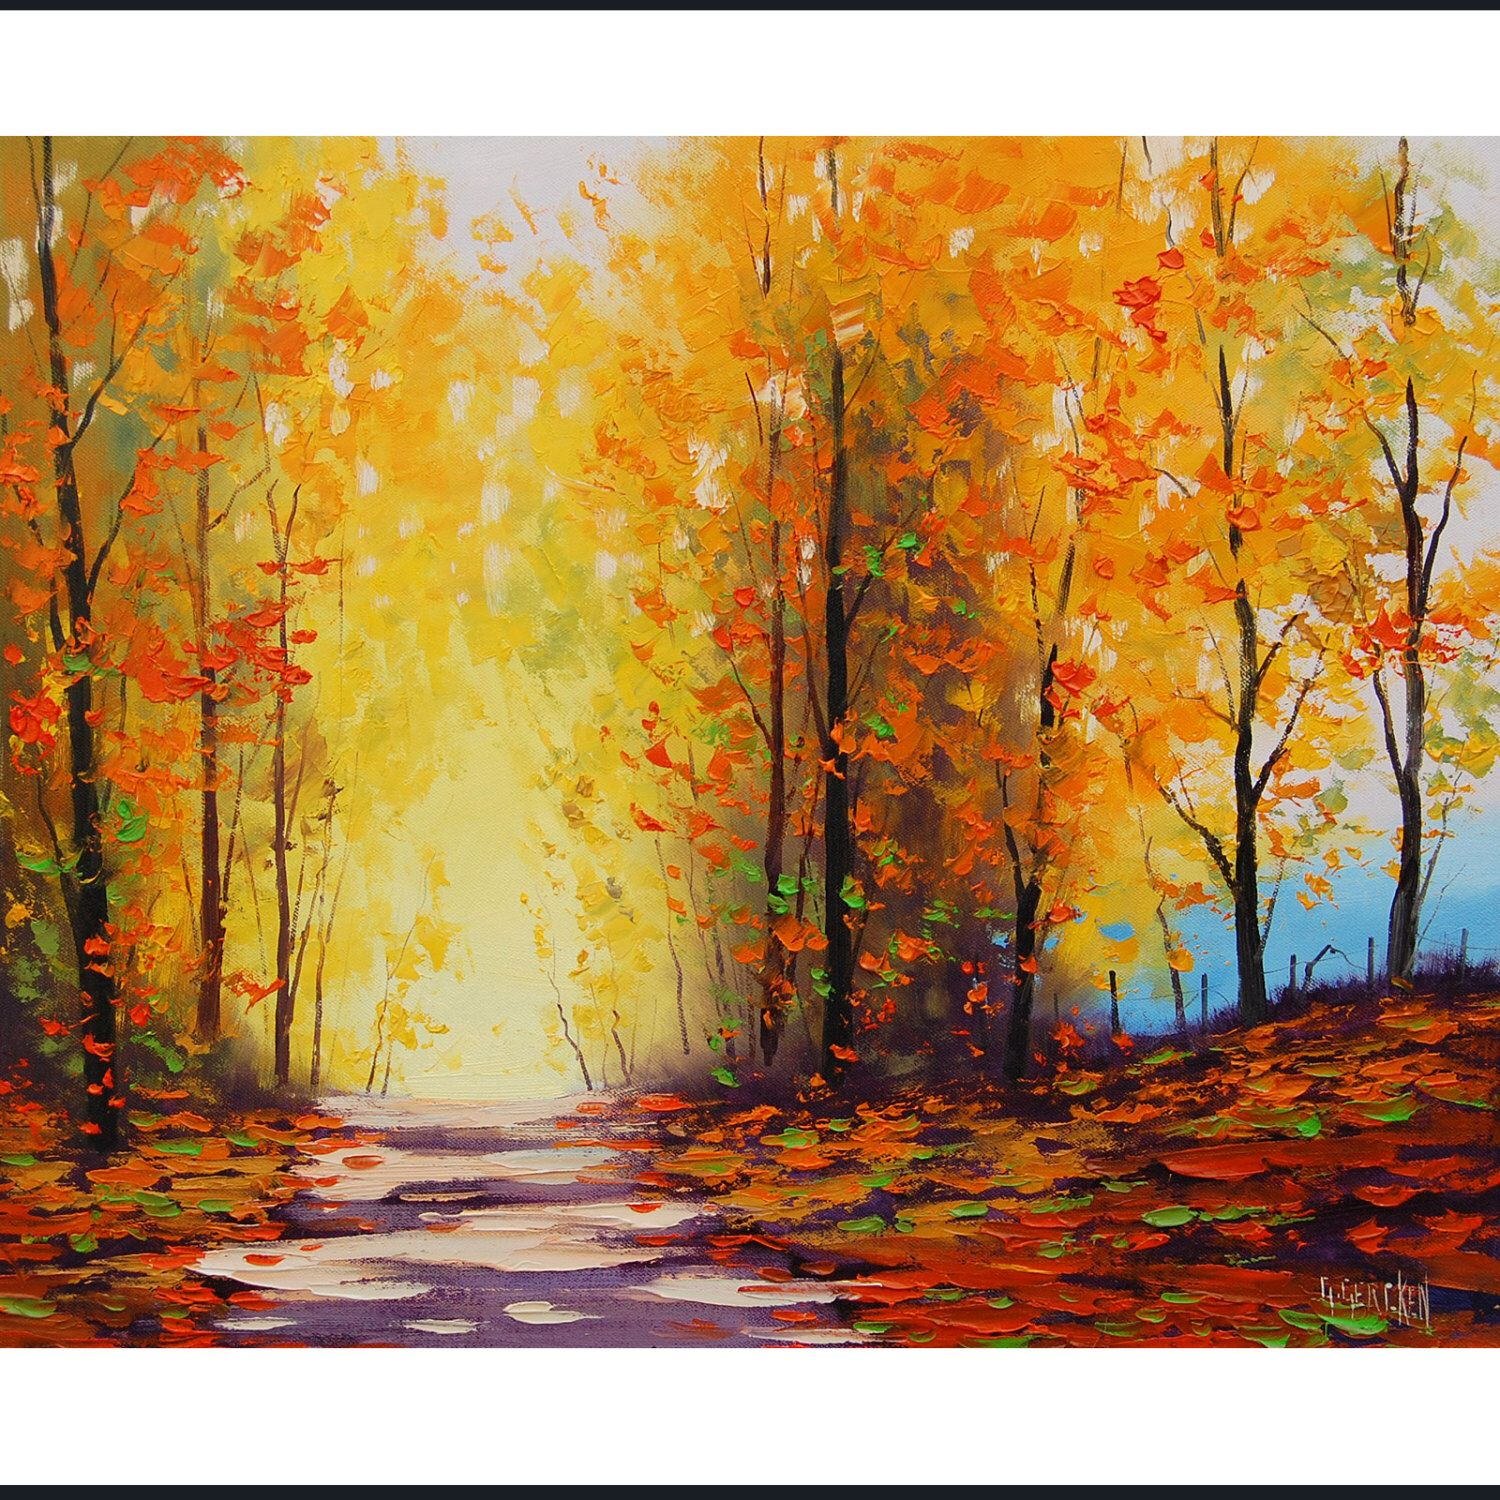 paintings of trees in autumn - photo #29